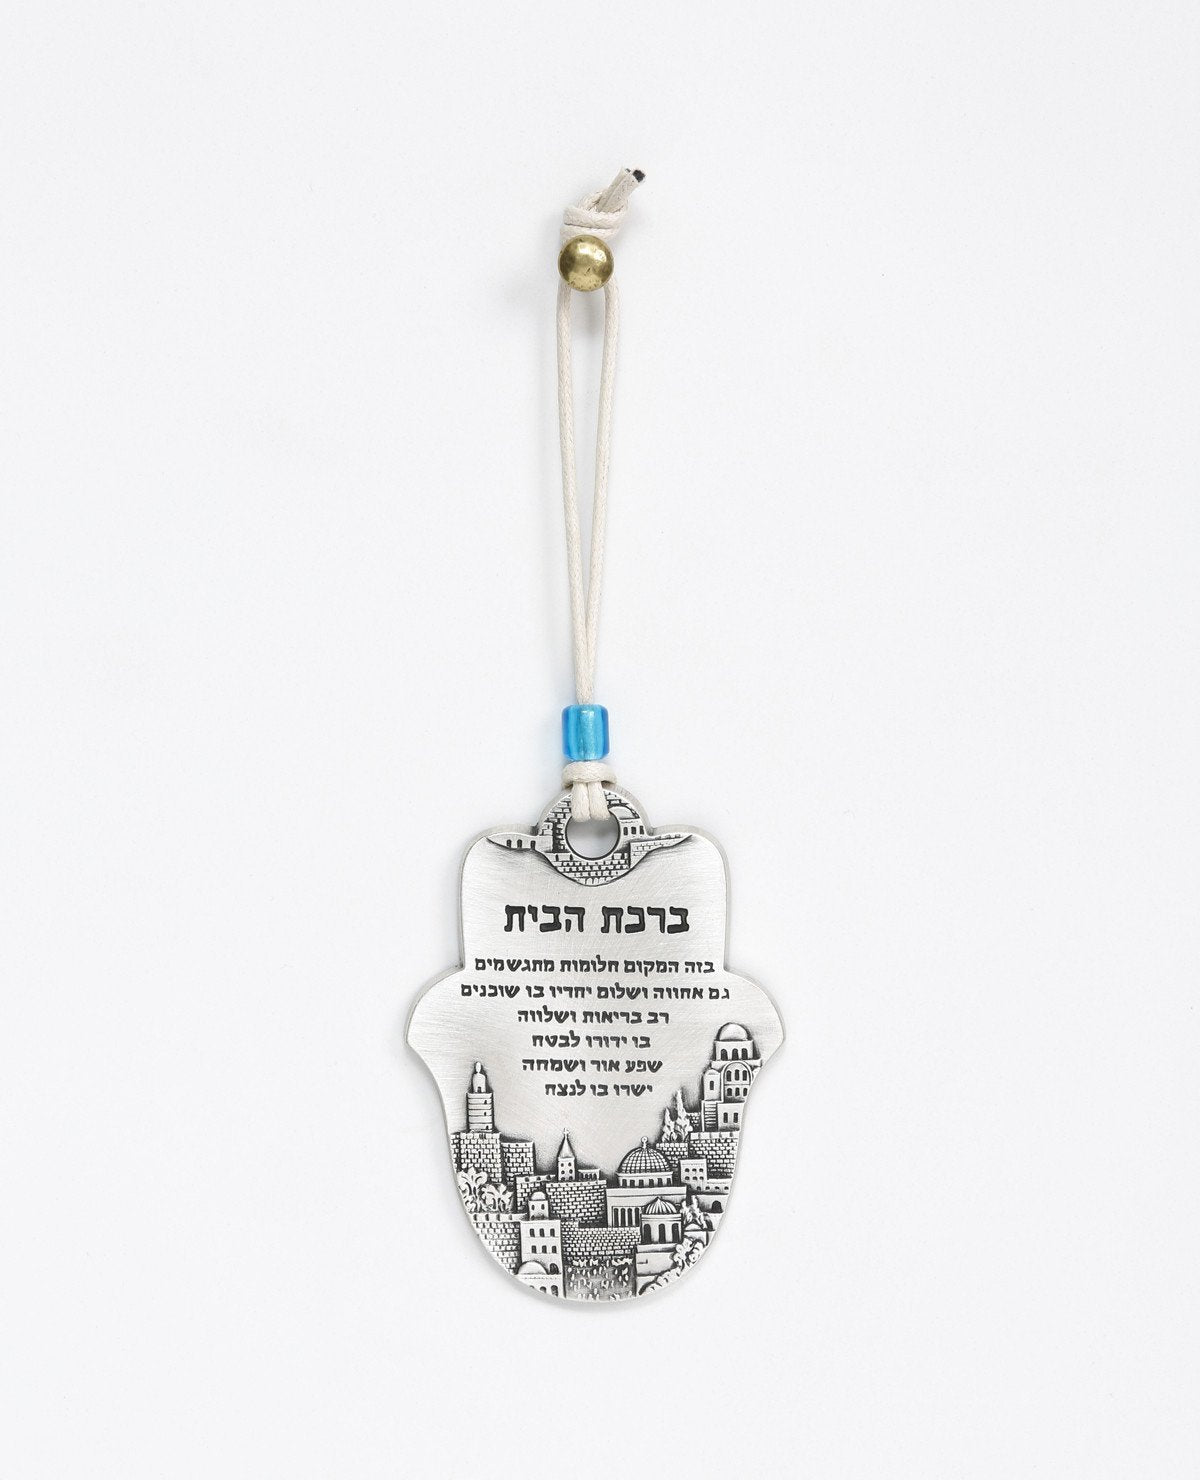 A Hamsa shaped hanging Home Blessing ornament coated in sterling silver and decorated with an embossed image of Jerusalem. The words of blessing will bestow the house with health, peace, kinship, abundance and fulfilled dreams. A joyful and thoughtful gift that blesses anyone who may receive it. Comes with a natural colored faux leather string for hanging decorated with a blue colored bead. Additional languages available: English.  Length: 9 cm  Width: 6 cm